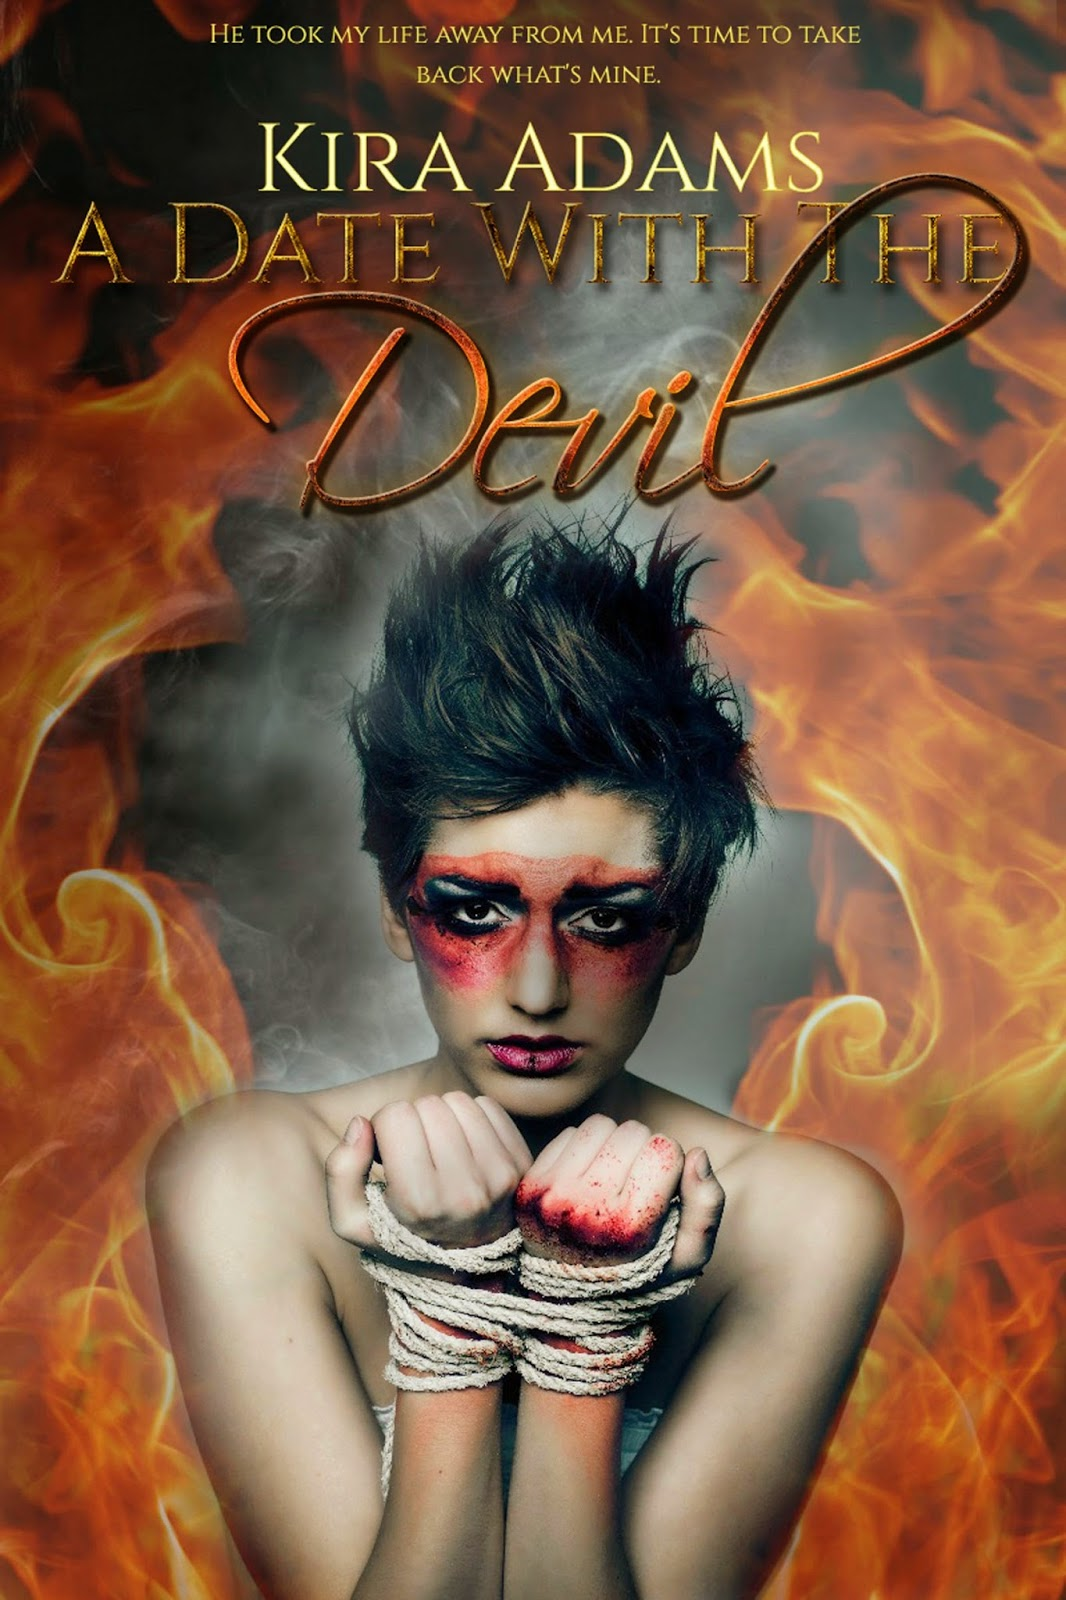 A Date with the Devil on Goodreads